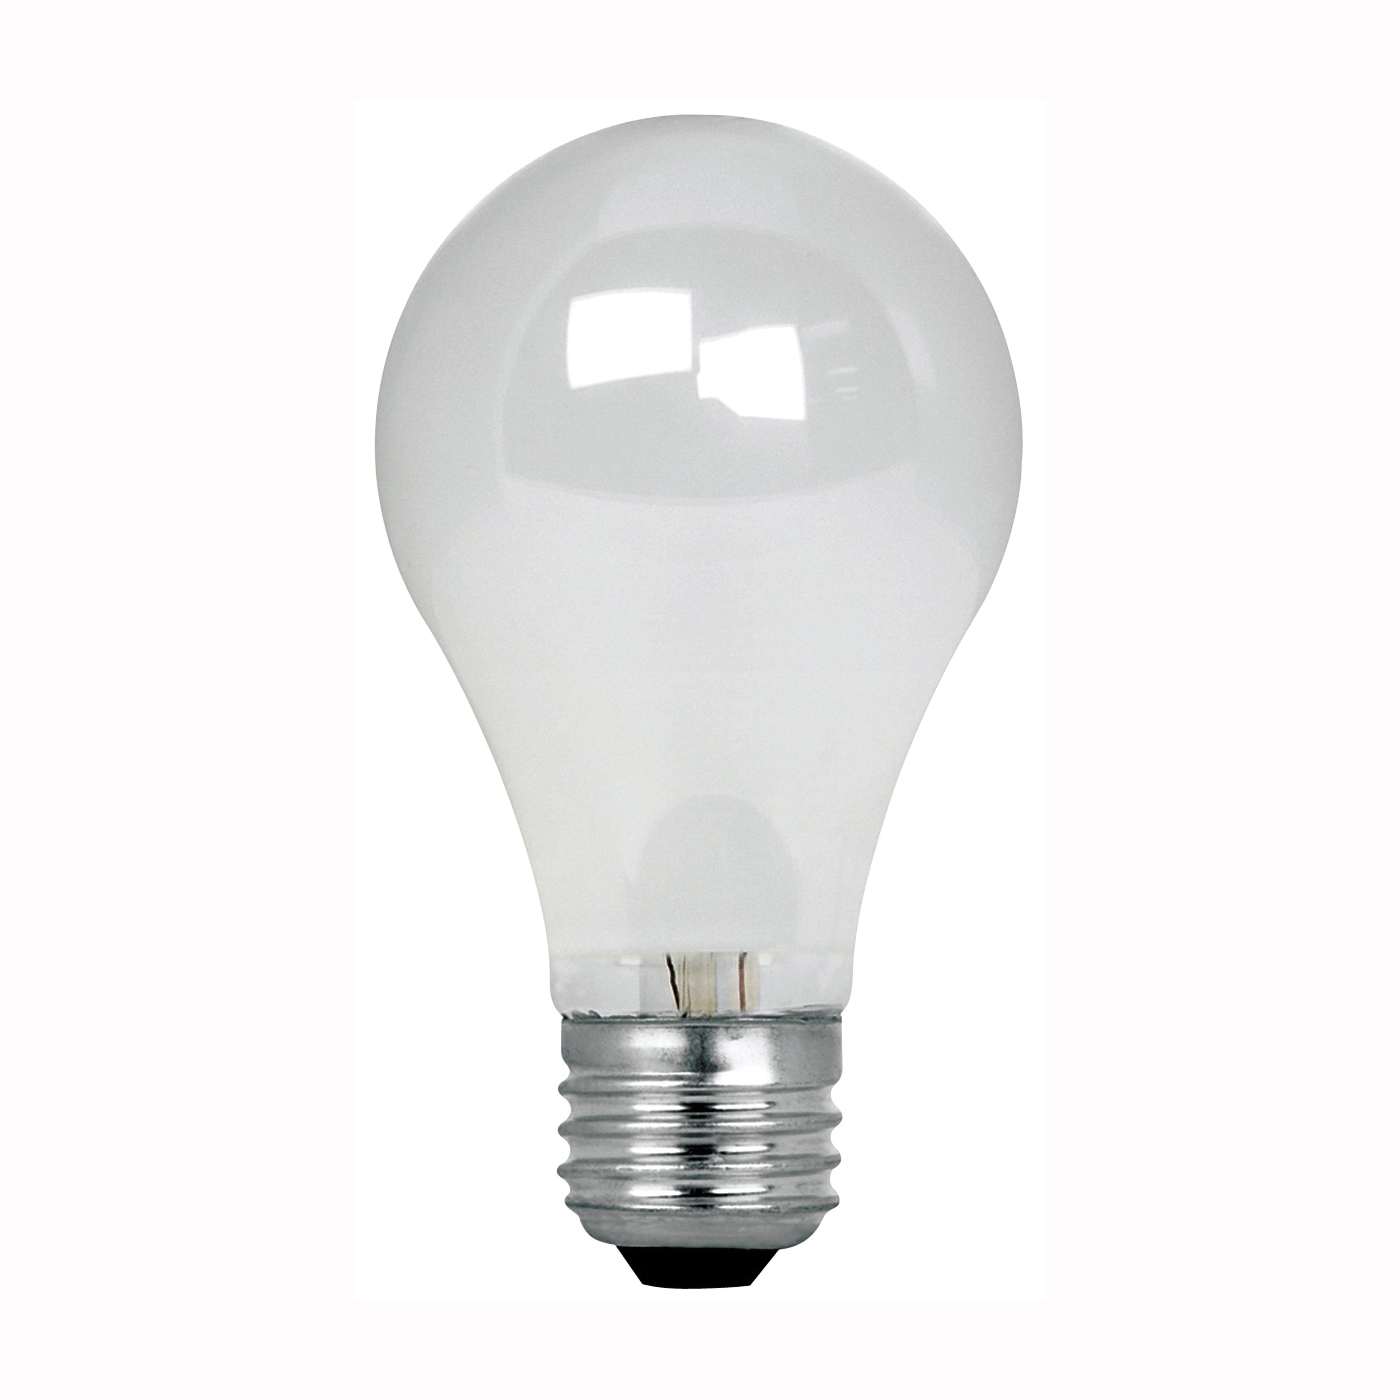 Picture of Feit Electric Q72A/W/4/RP Halogen Lamp, 72 W, Medium E26 Lamp Base, A19 Lamp, Soft White Light, 1490 Lumens